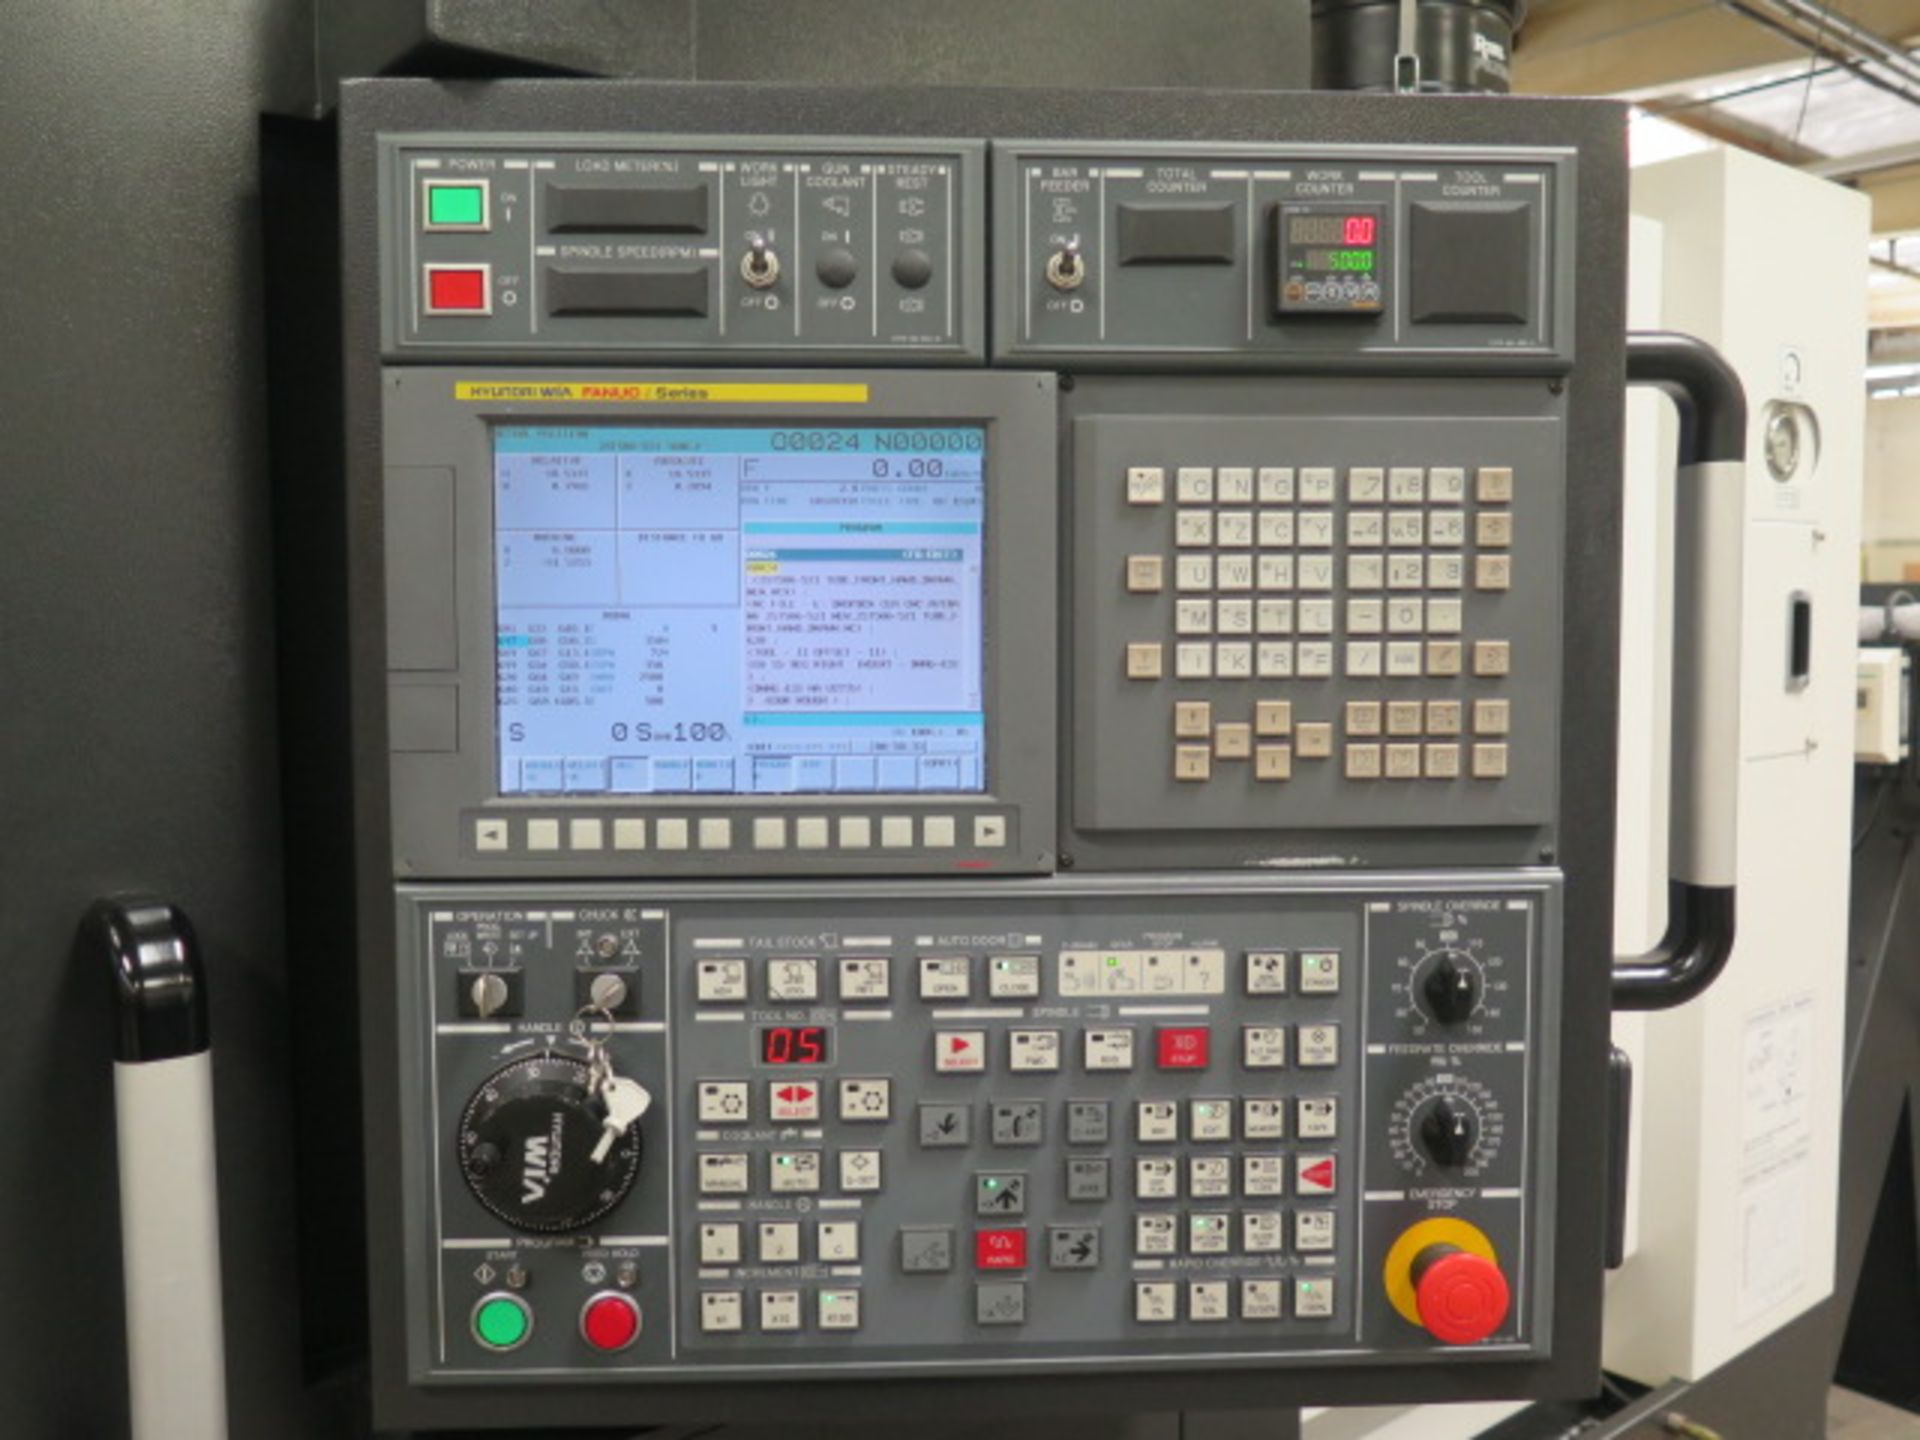 2017 Hyundai WIA L300LA CNC Turning Center s/n G3726-0108 w/ Fanuc i-Series Controls, SOLD AS IS - Image 4 of 18